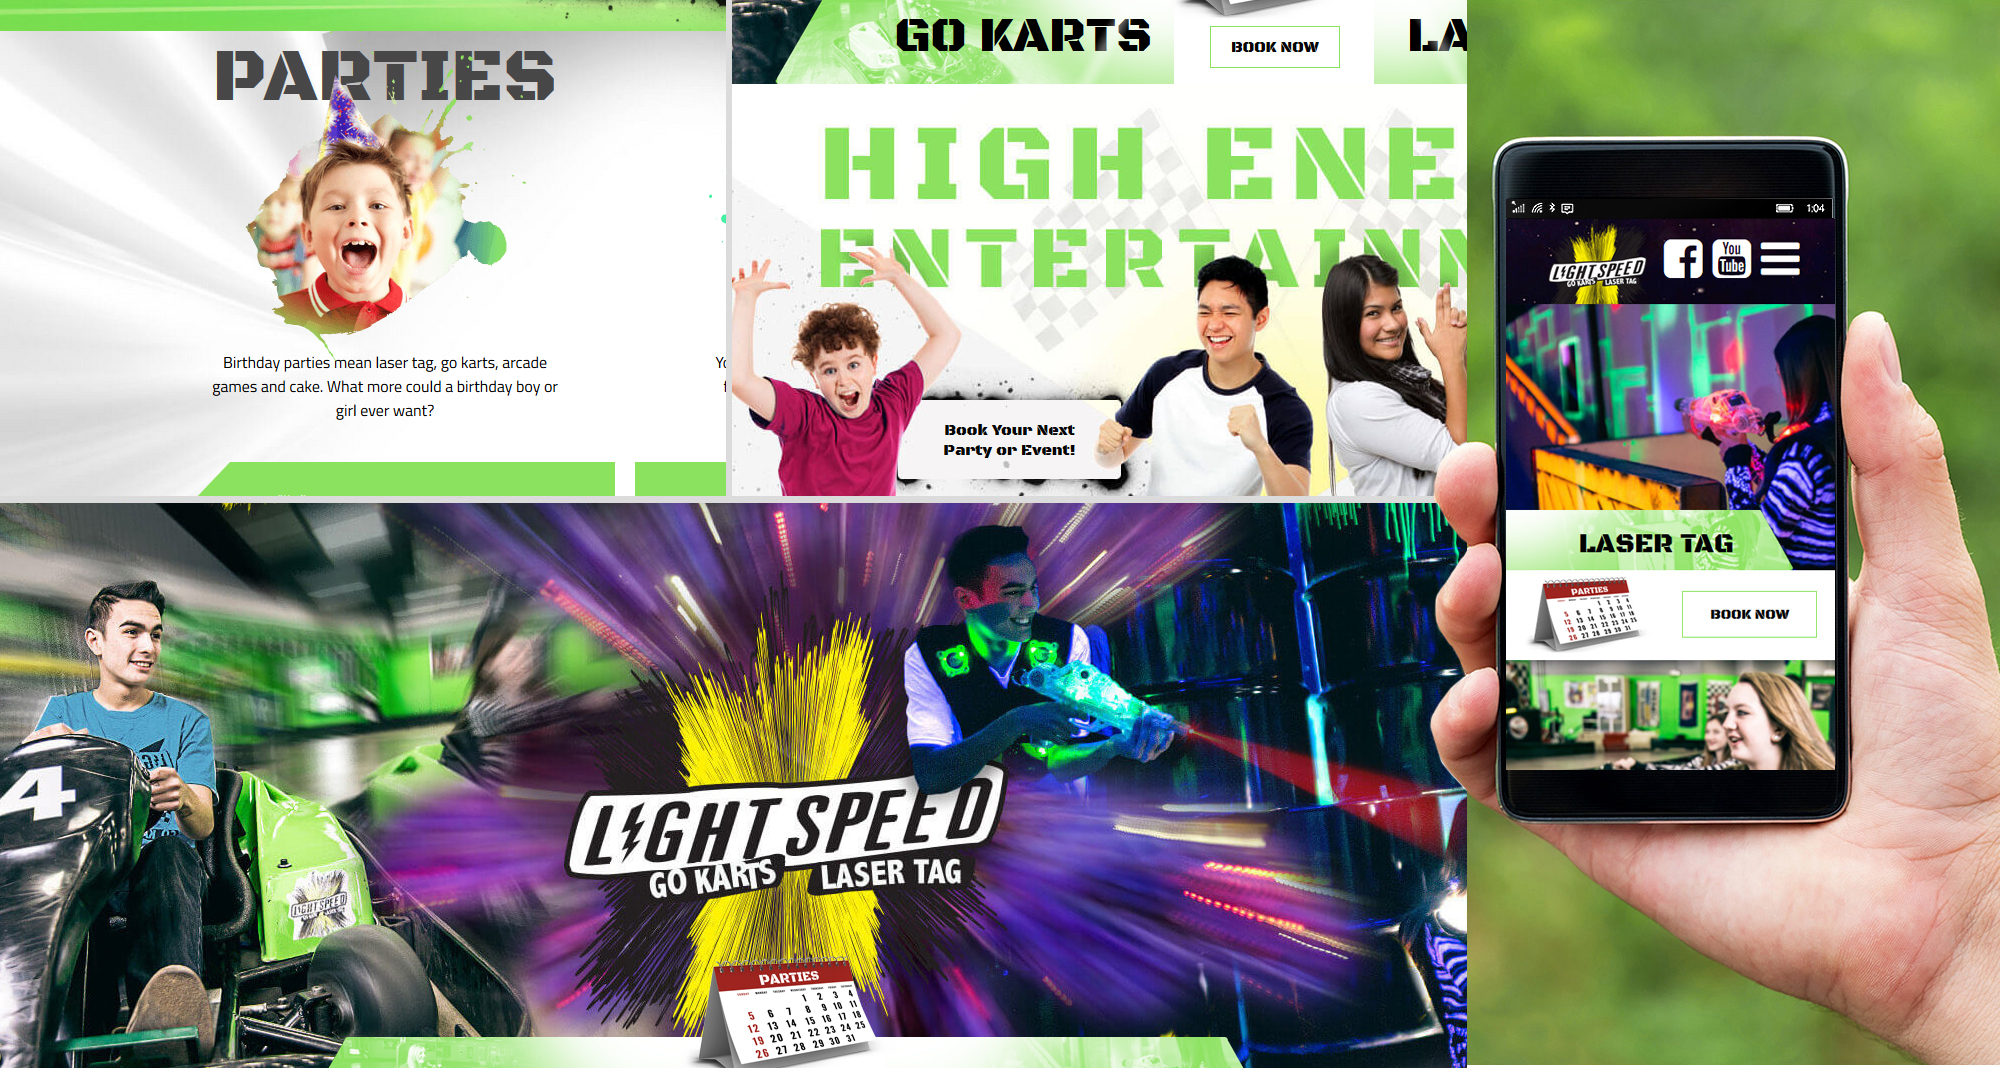 Milwaukee web marketing for Light Speed Go Karts/Laser Tag